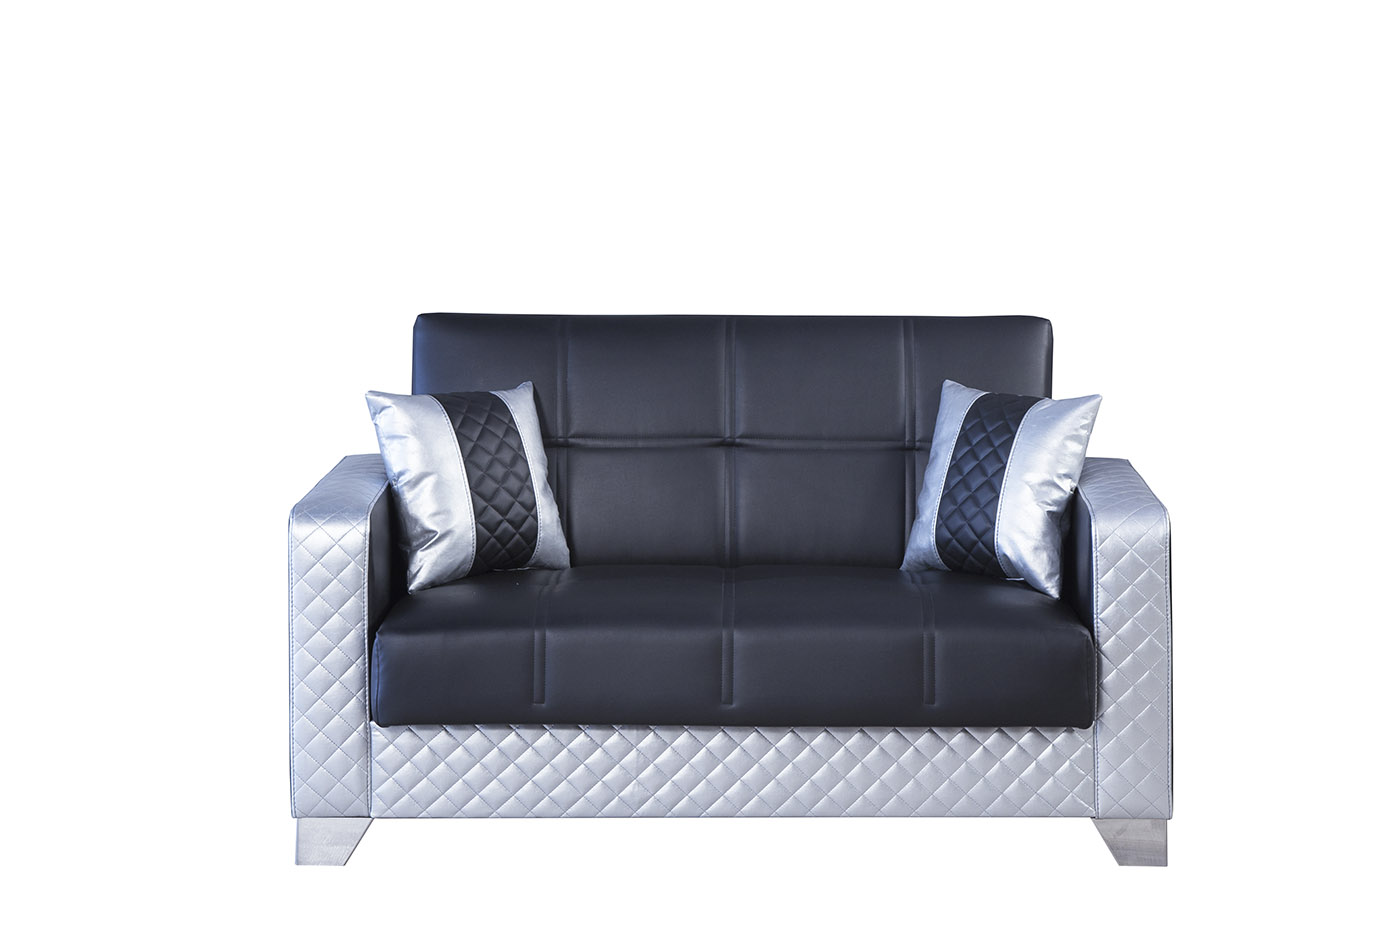 Maximum Black Silver Convertible Loveseat By Casamode